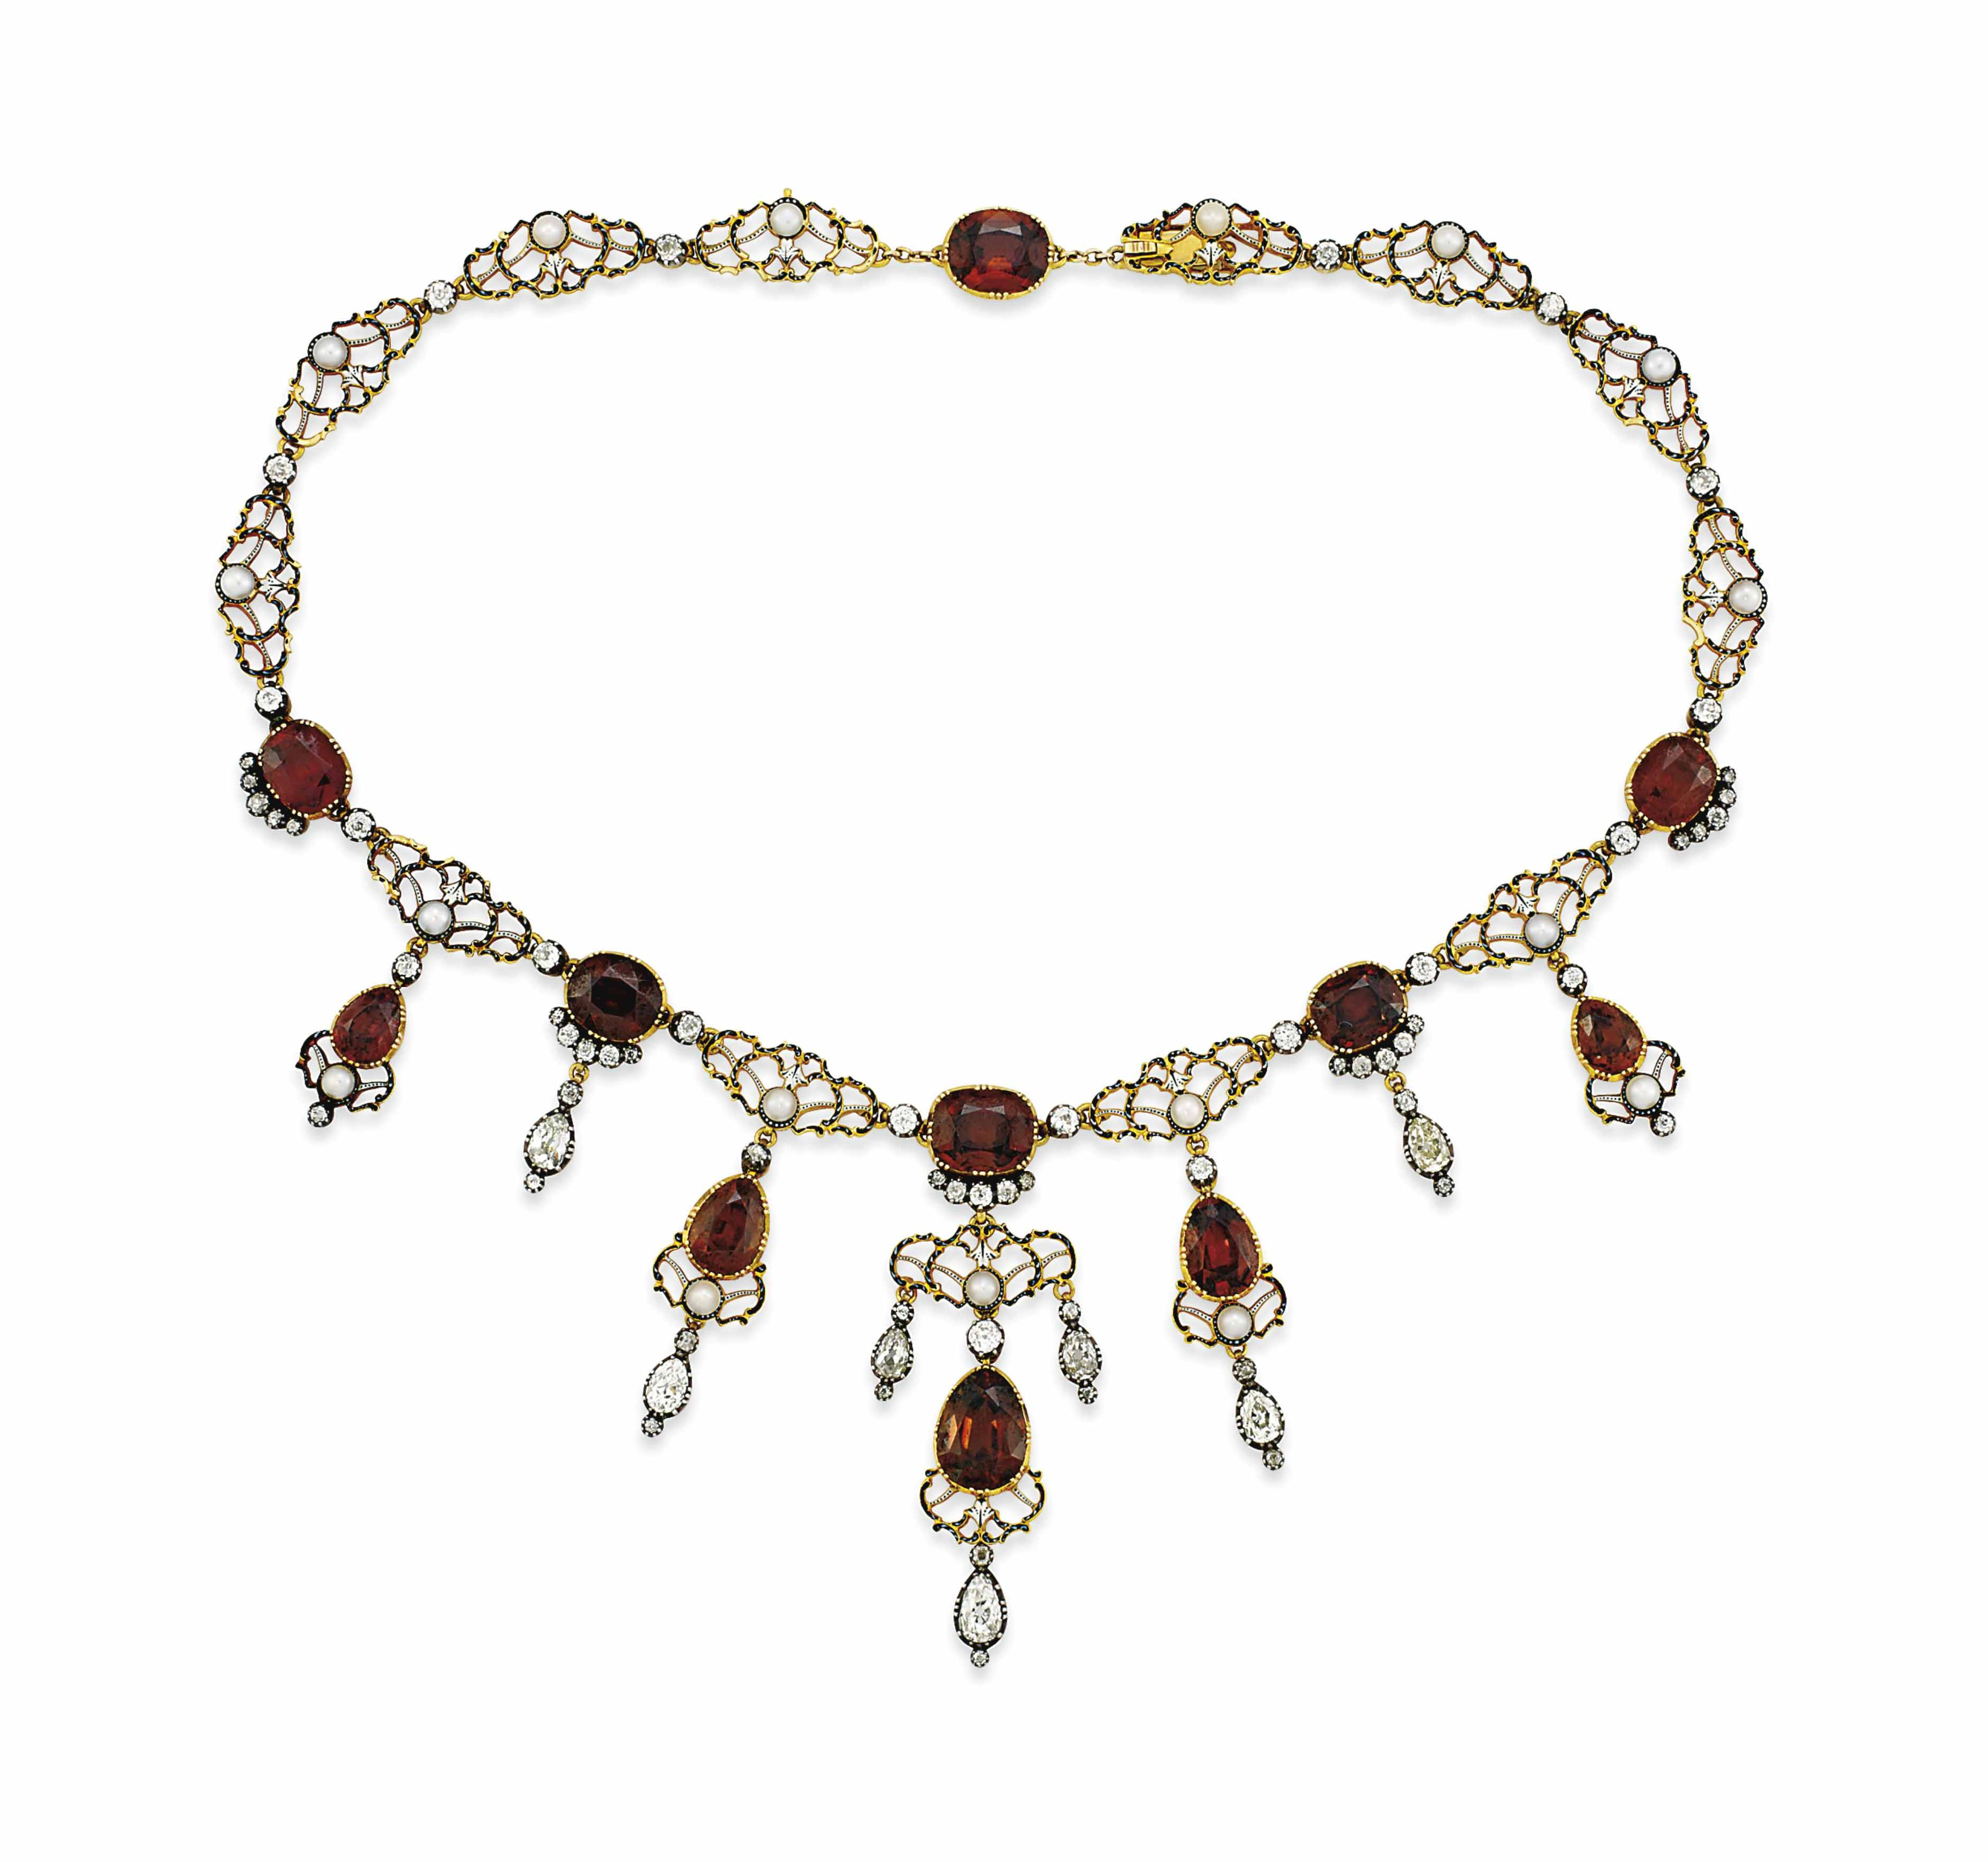 A ZIRCON, PEARL AND DIAMOND NECKLACE, BY GIULIANO